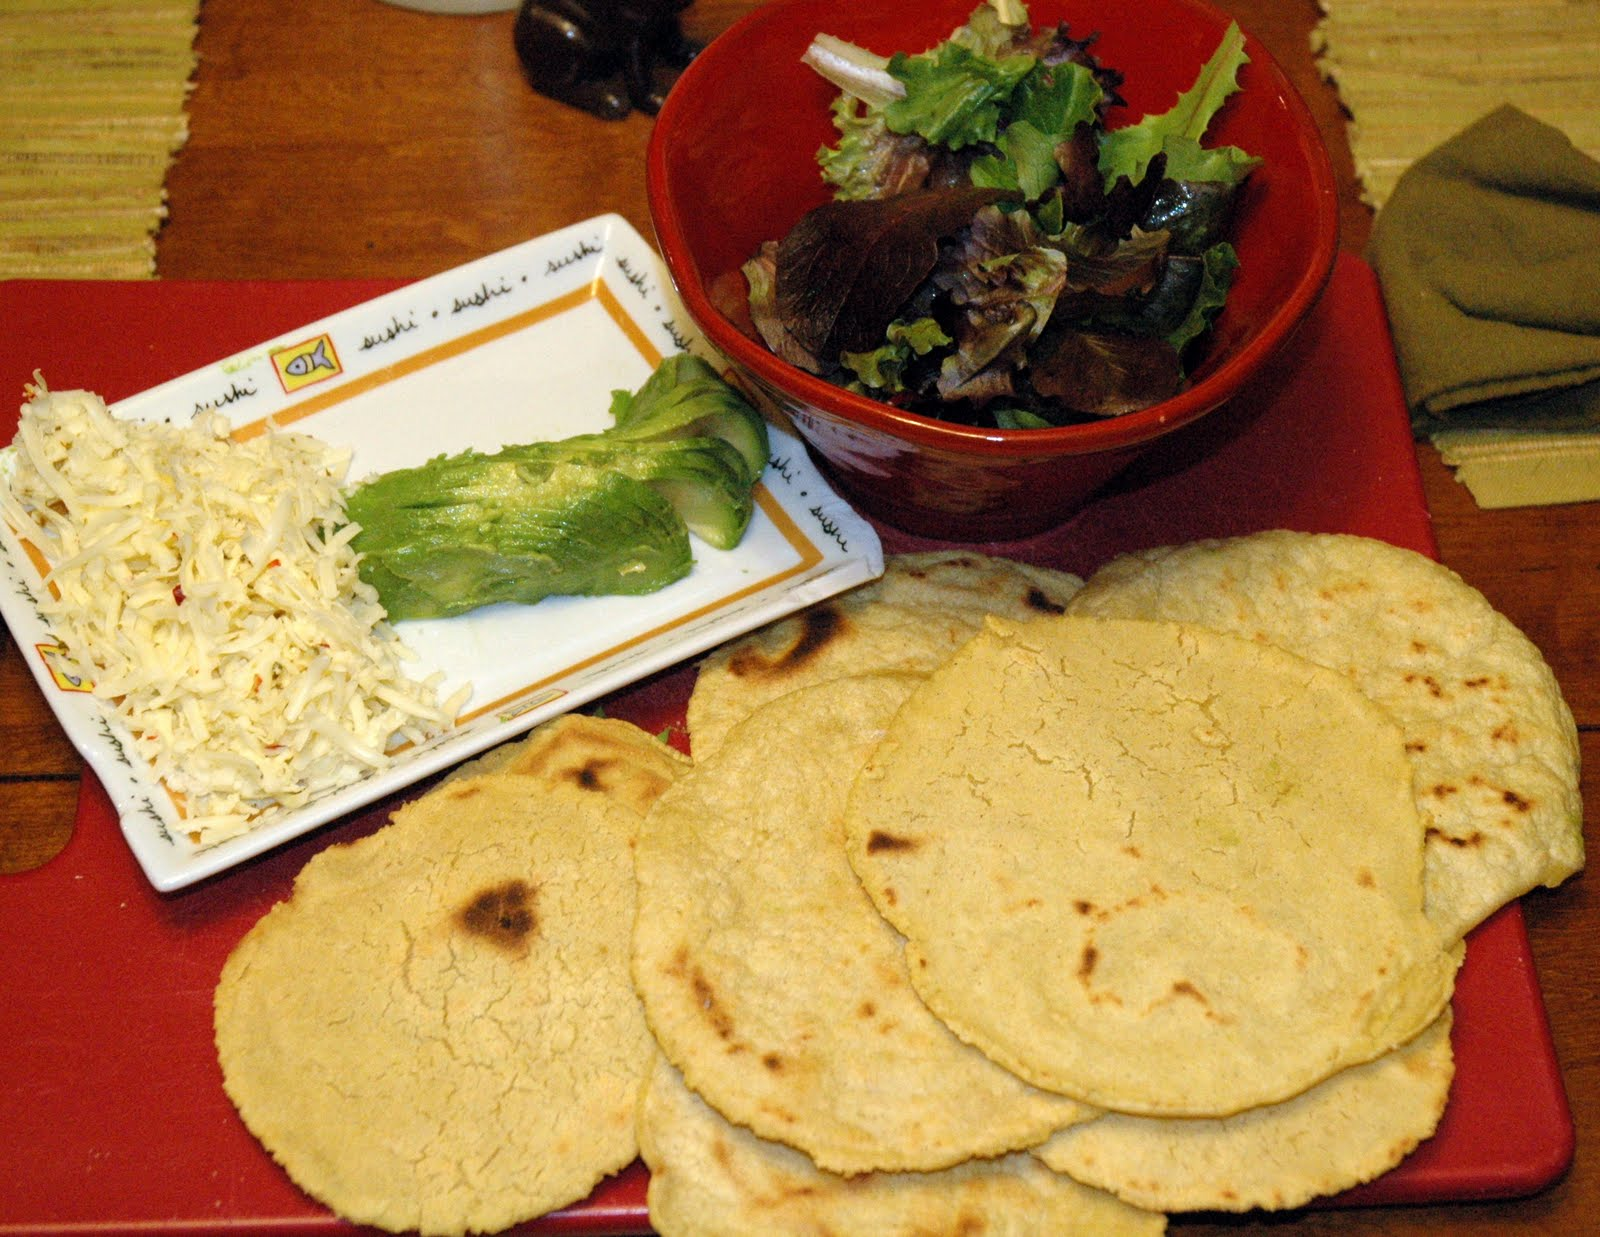 Finished Corn Tortillas ready to assemble